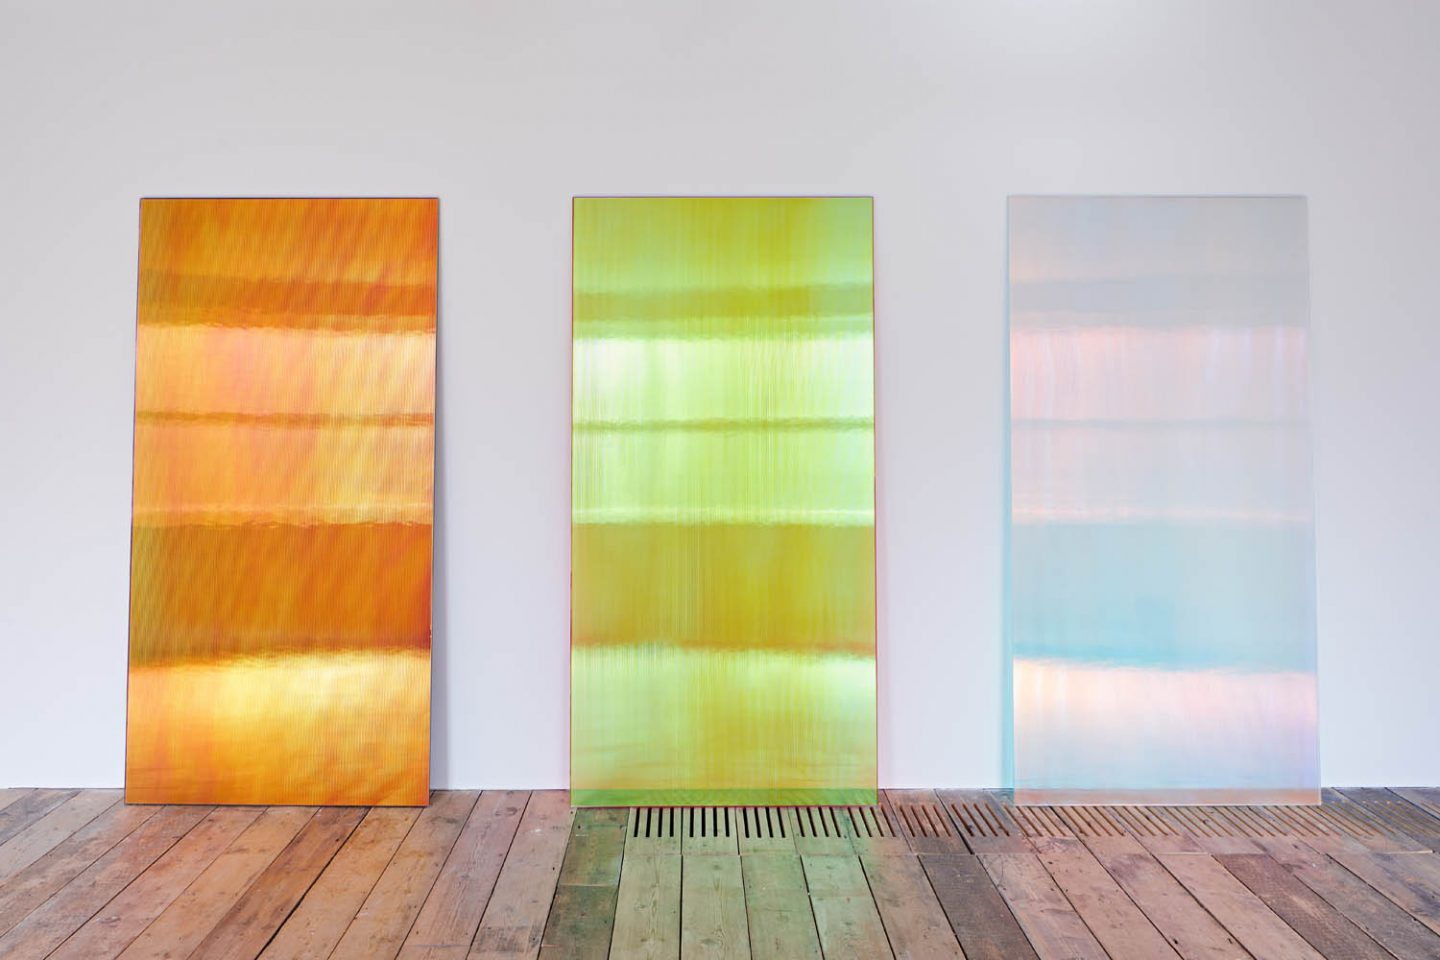 Ann Veronica Janssens at the South London Gallery Installation view of CL2BK, 2015; Pinky Sunset R, 2019; and CL2 Blue Shadow, 2015 (left to right) Photo: Andy Stagg